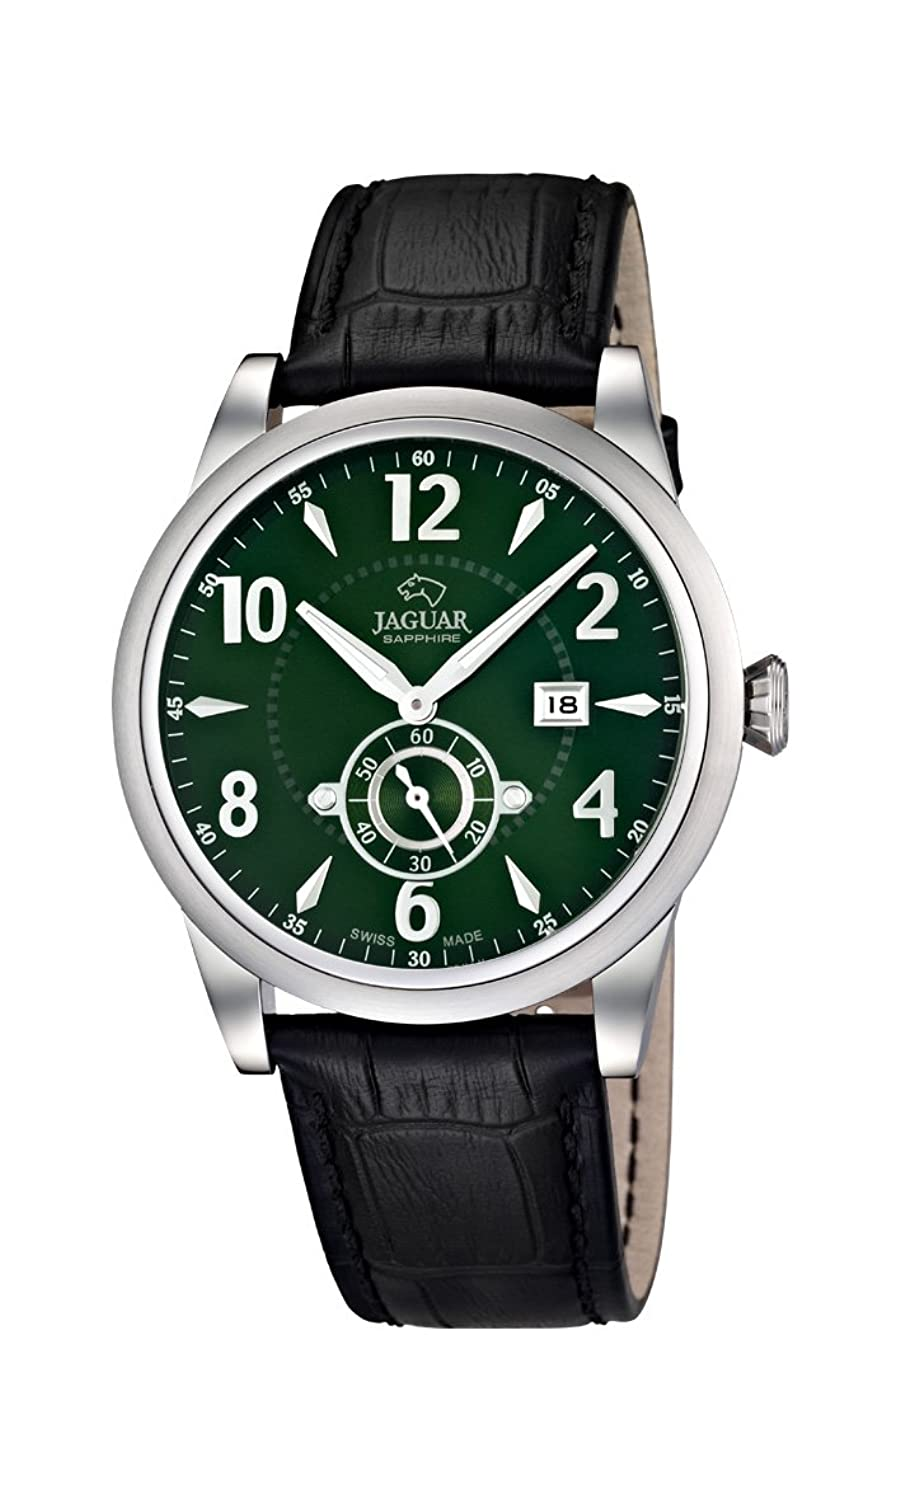 Jaguar Watches Herren-Armbanduhr XL Analog Quarz Leder J662-3